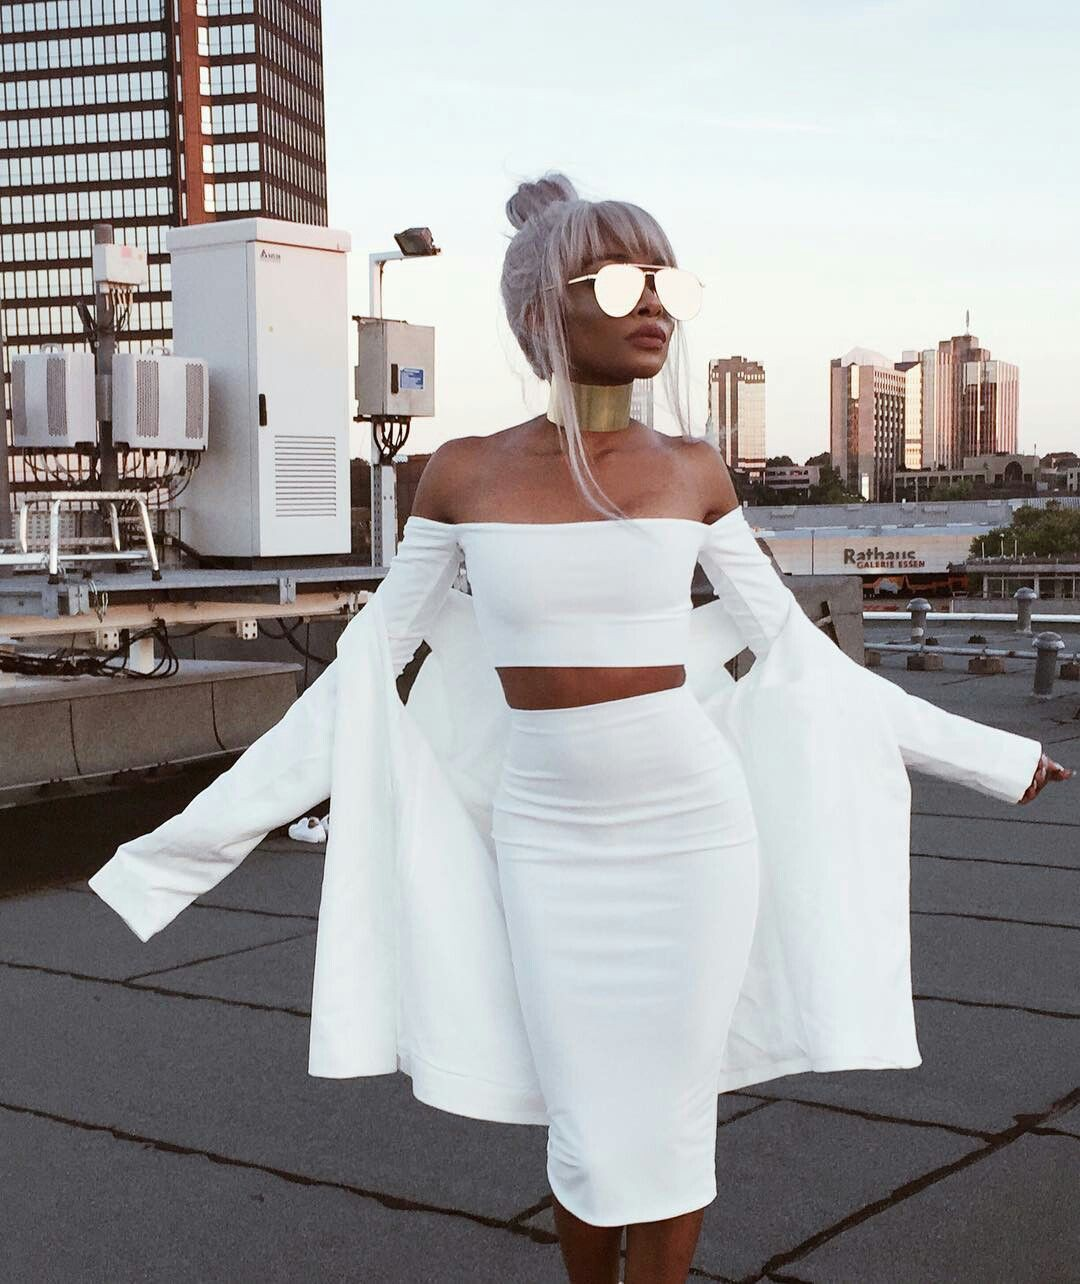 All white party outfit, fashion design, street fashion, wedding dress, party dress, white party